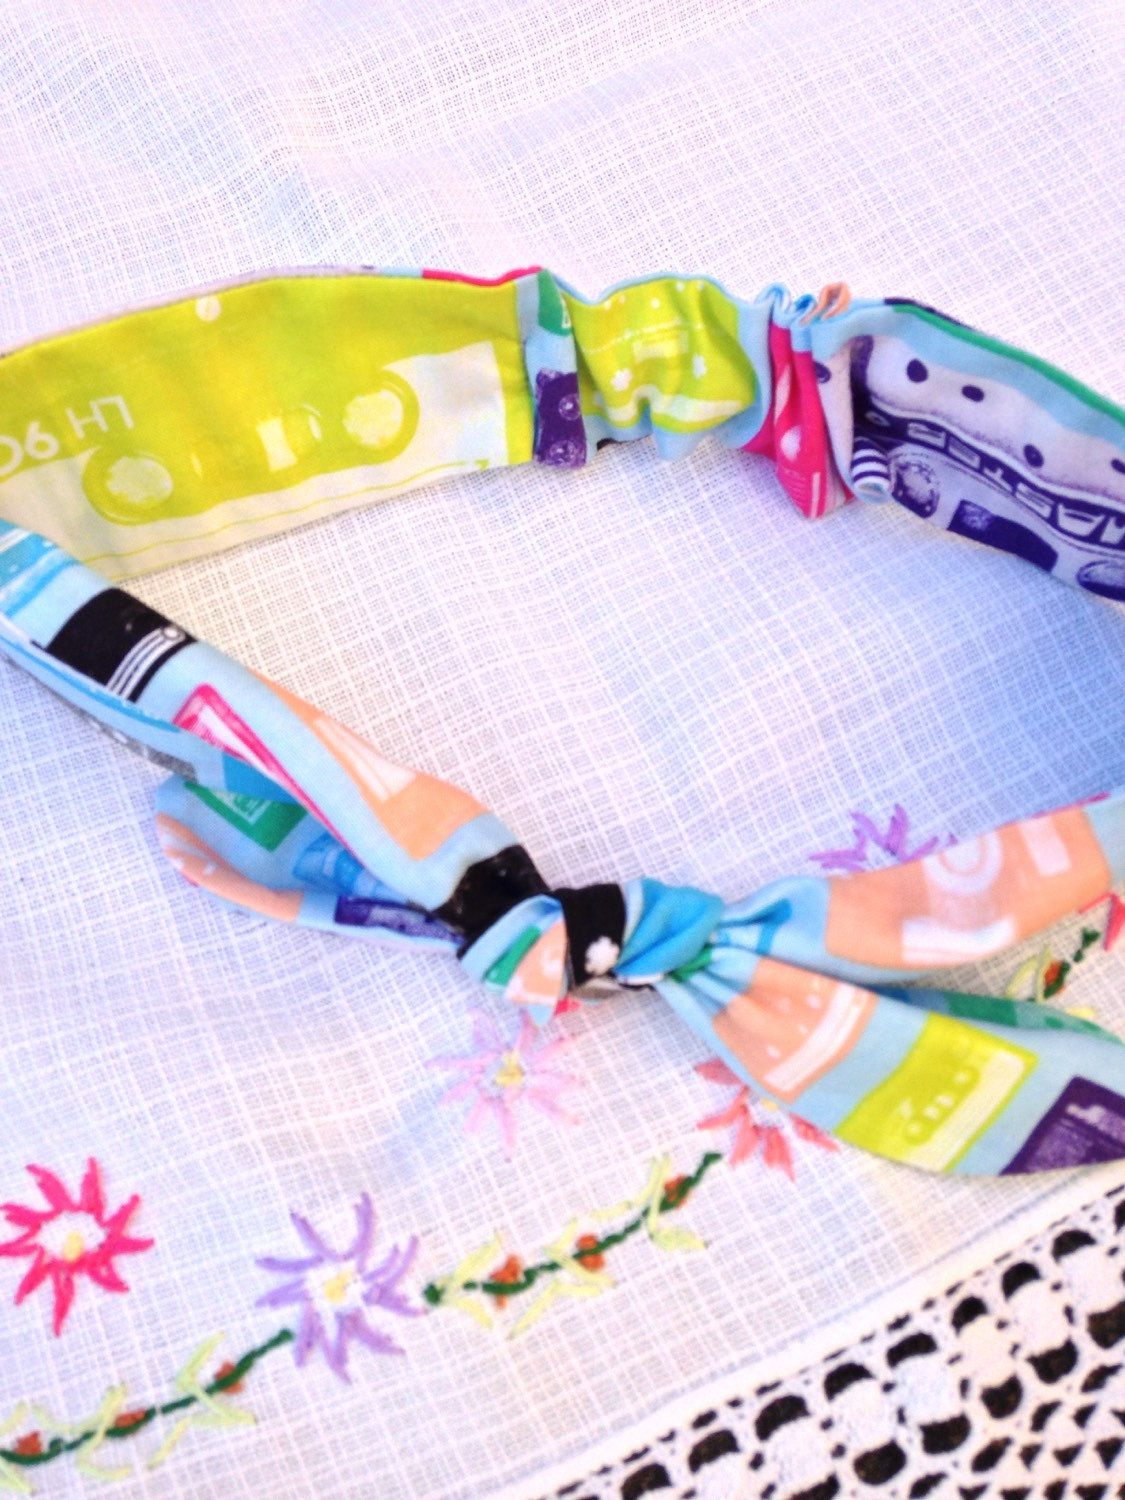 Top Knot Headband - Cassette Tape - One Size Fits All by YumyumHome on Etsy https://www.etsy.com/listing/221445484/top-knot-headband-cassette-tape-one-size